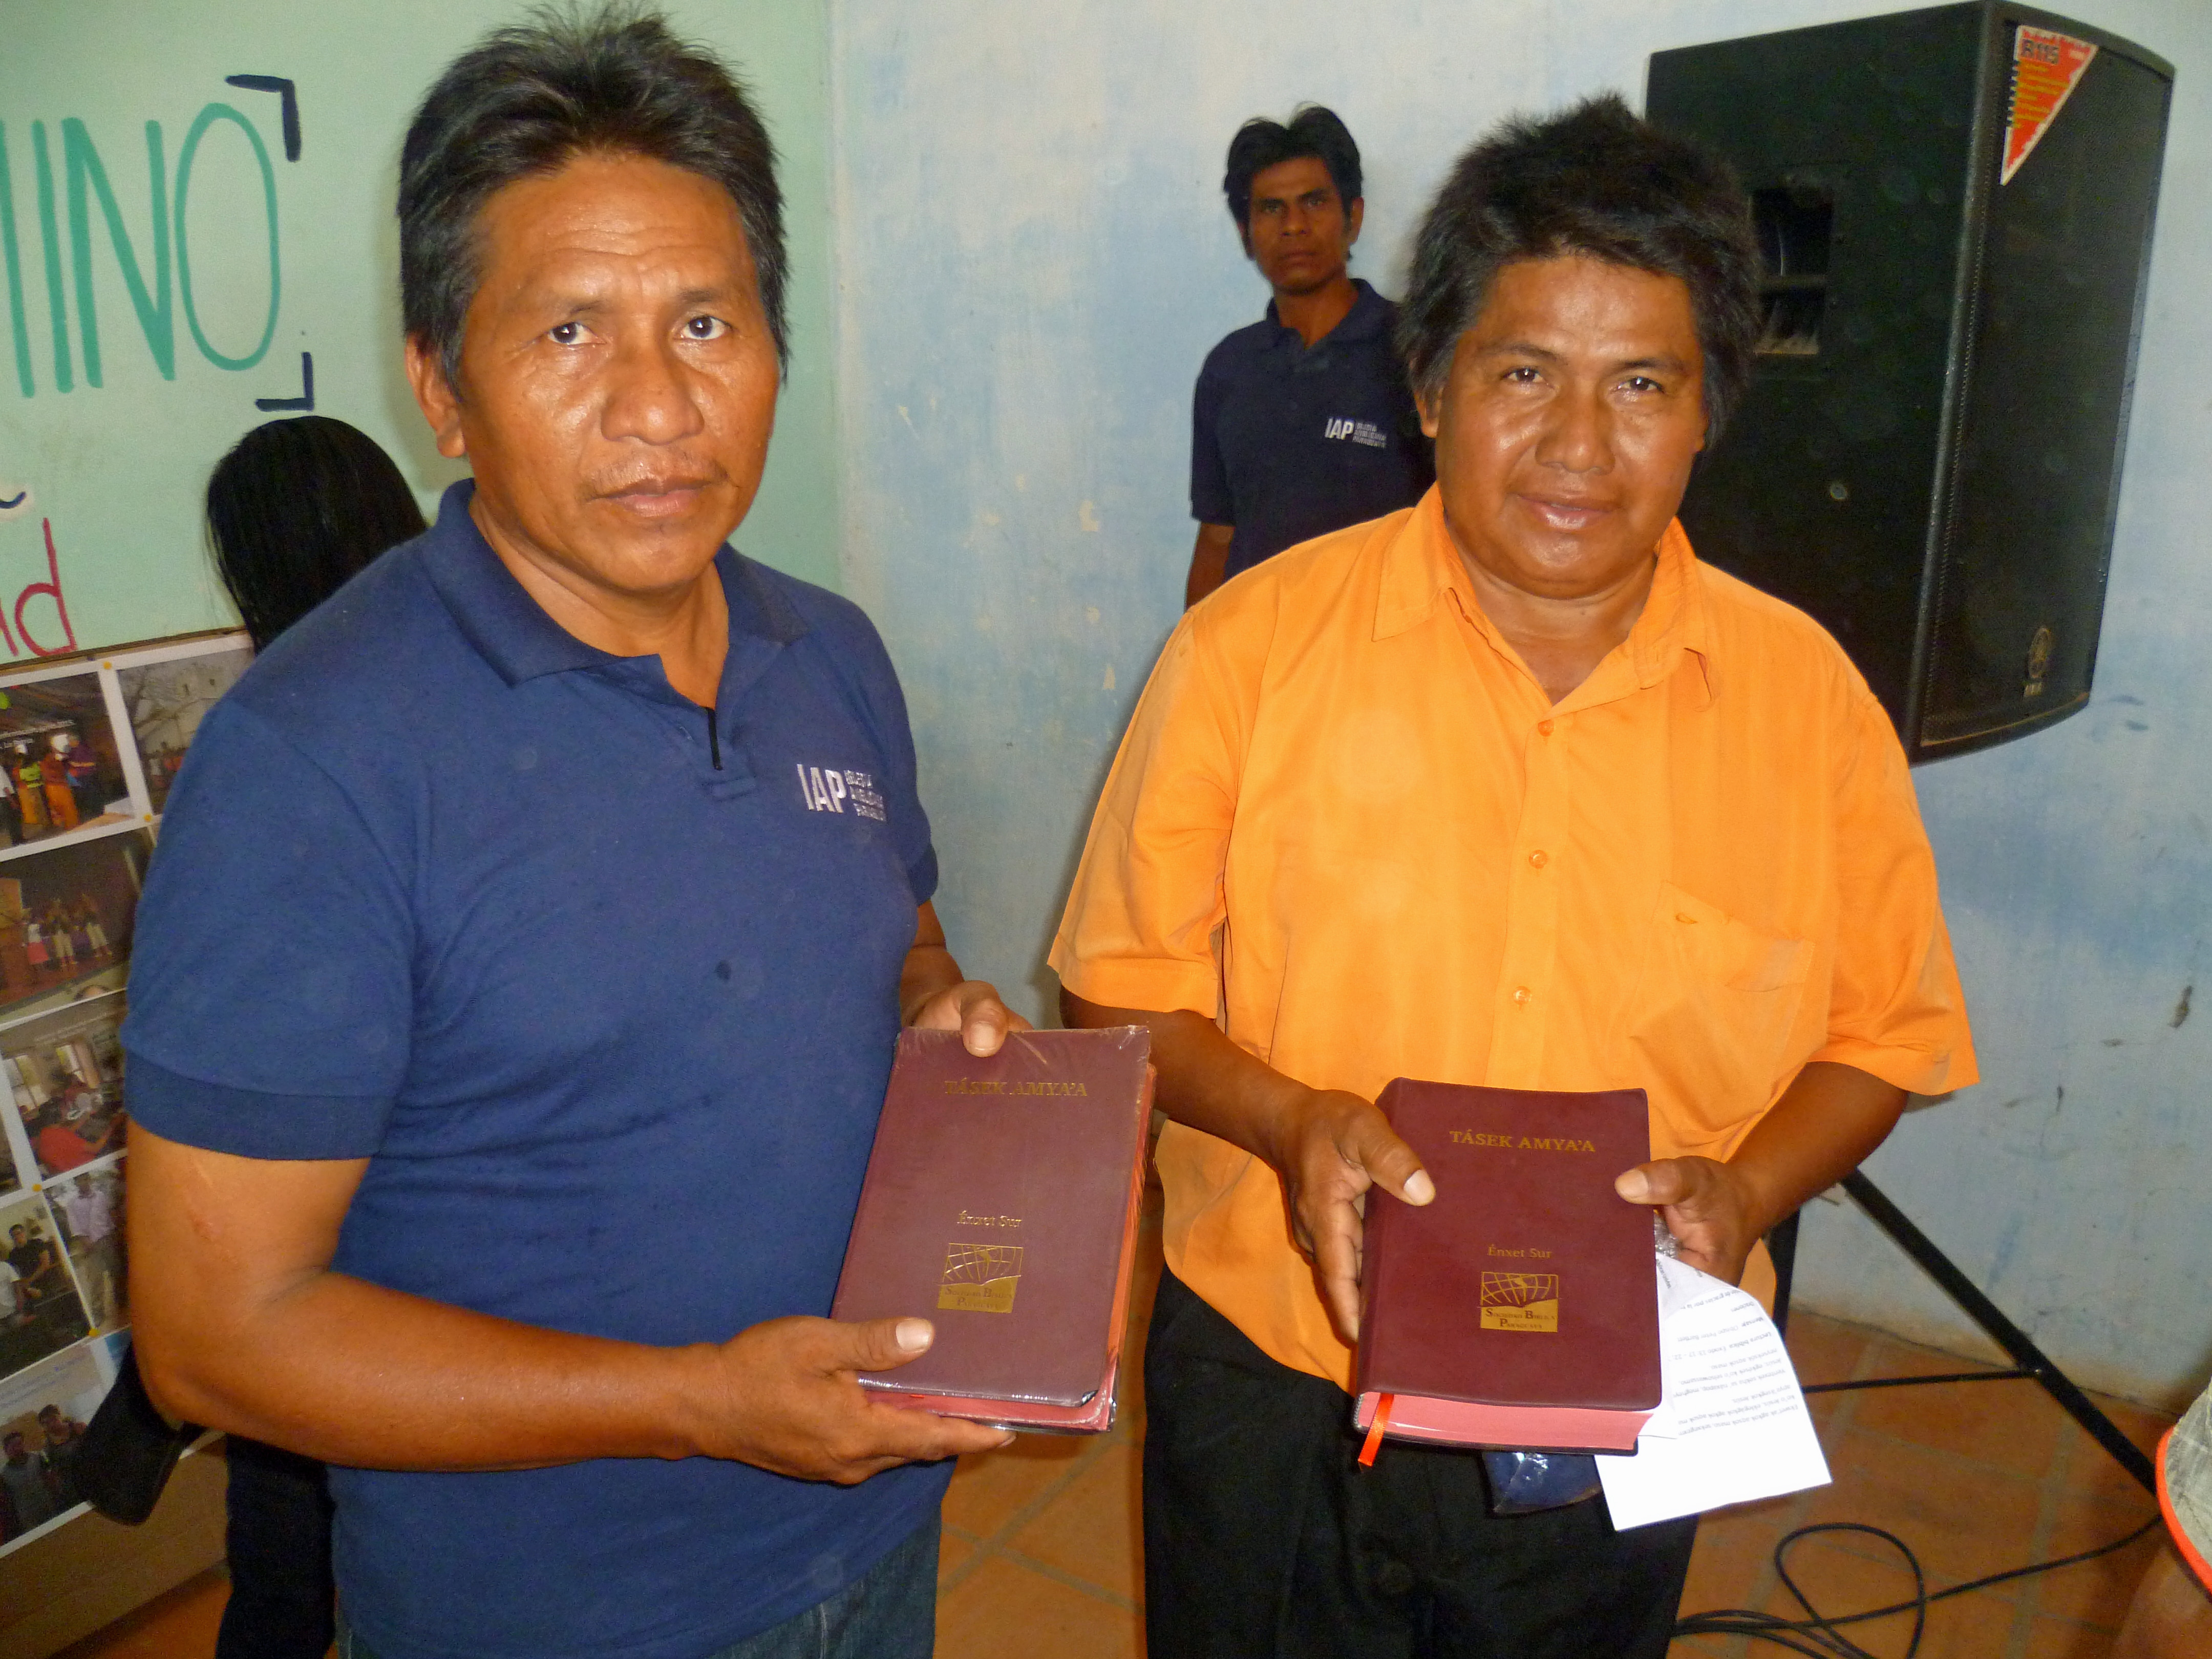 New Bible translation for Paraguayan believers